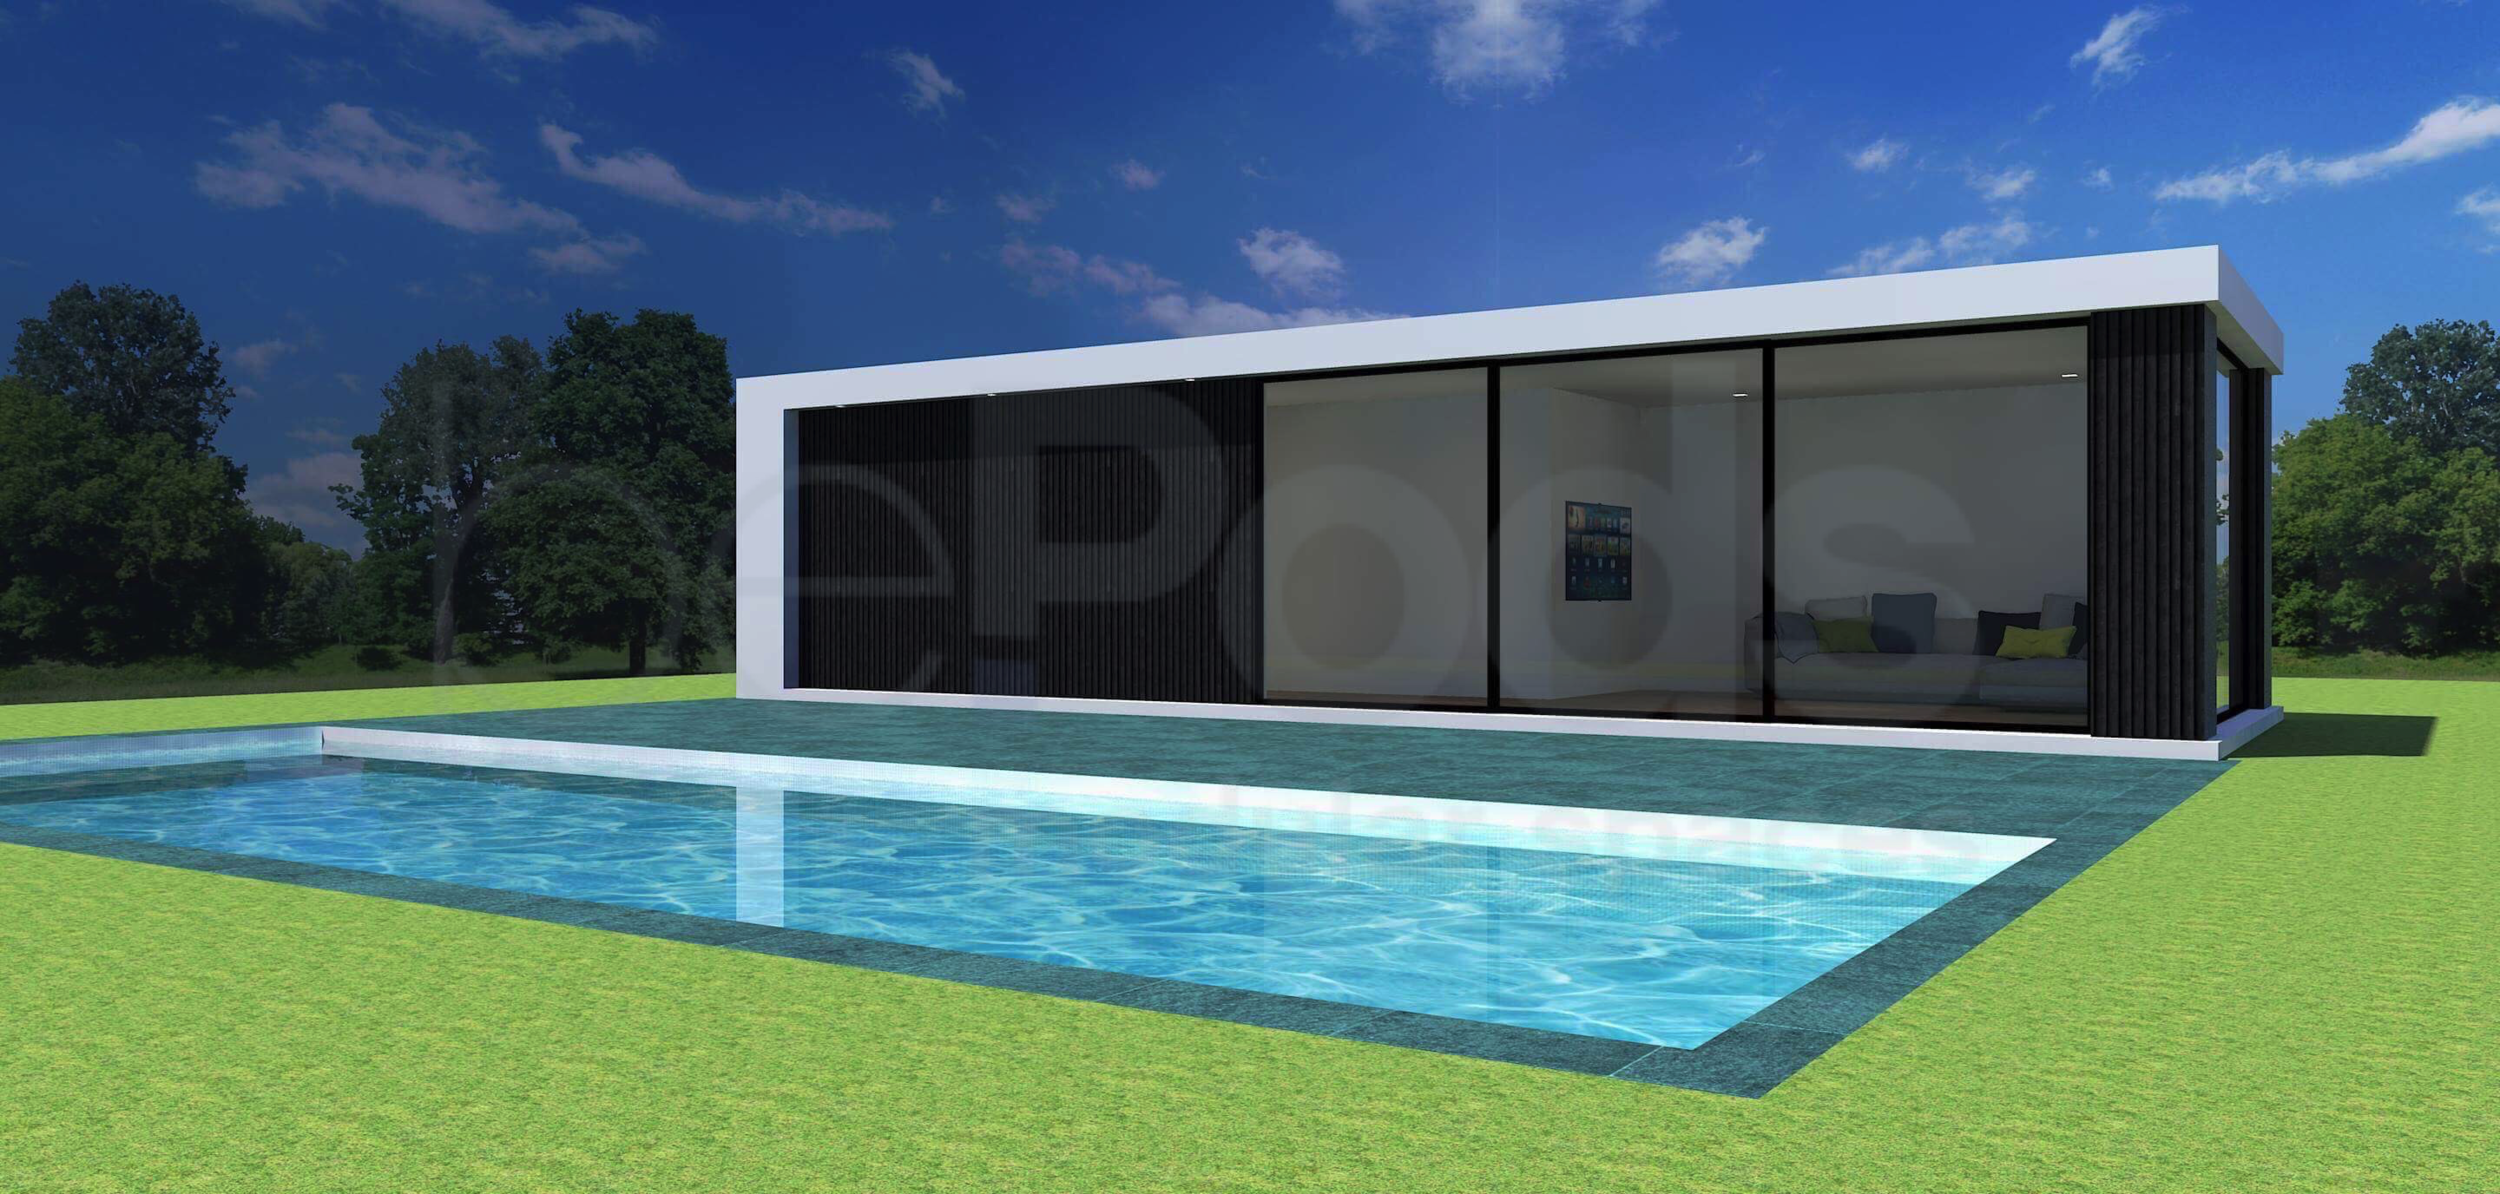 BePods_Modulair_Poolhouse_4.png